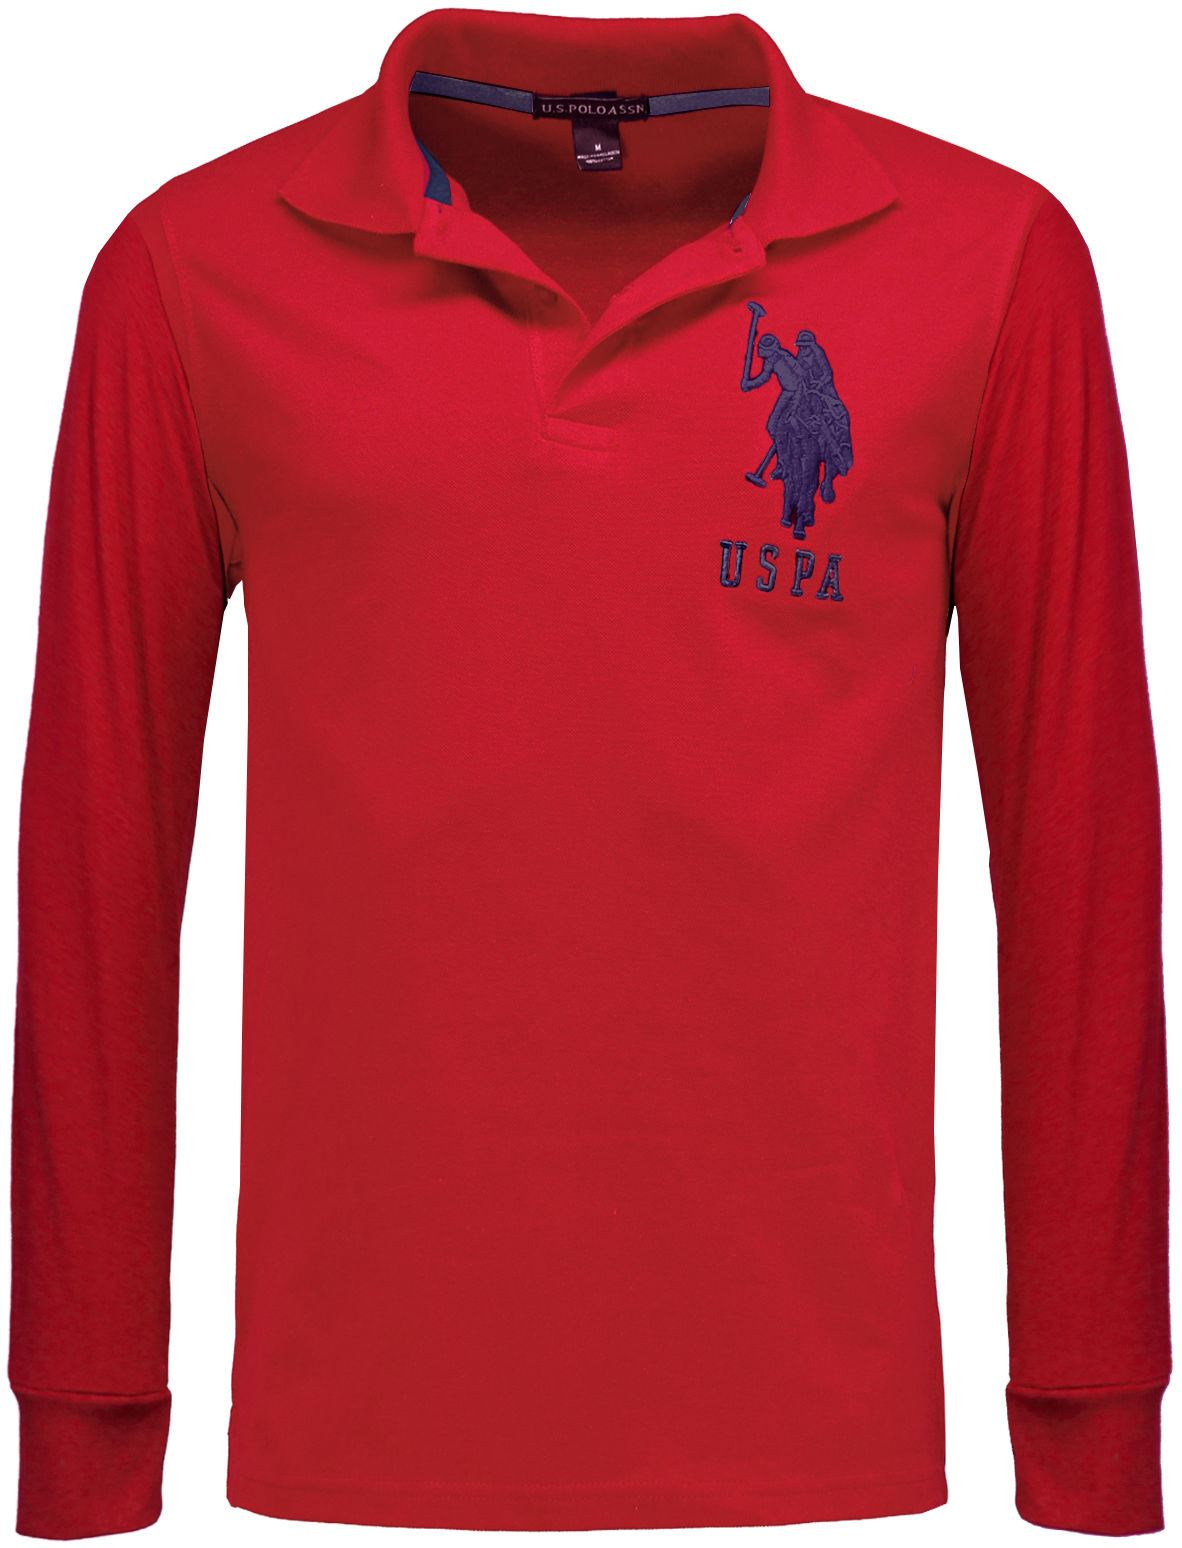 Us polo assn branded mens long sleeve polo shirts pique for Mens collared t shirts